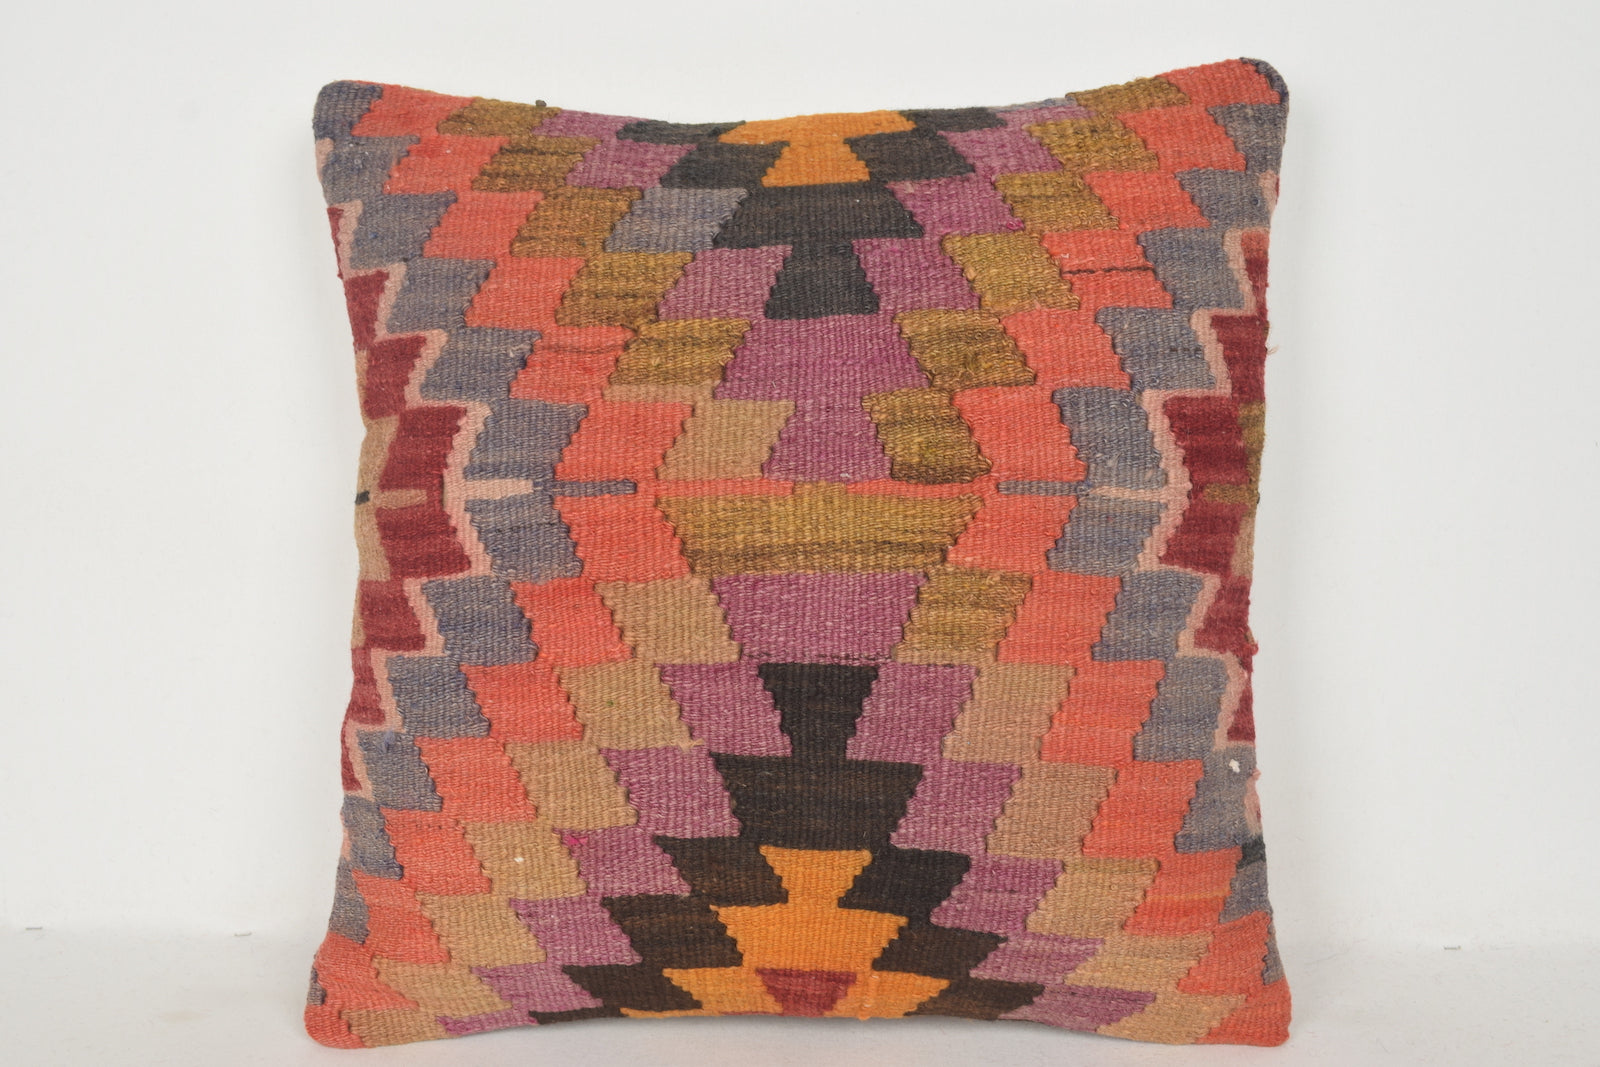 Vintage Kilim Ozan Cushion